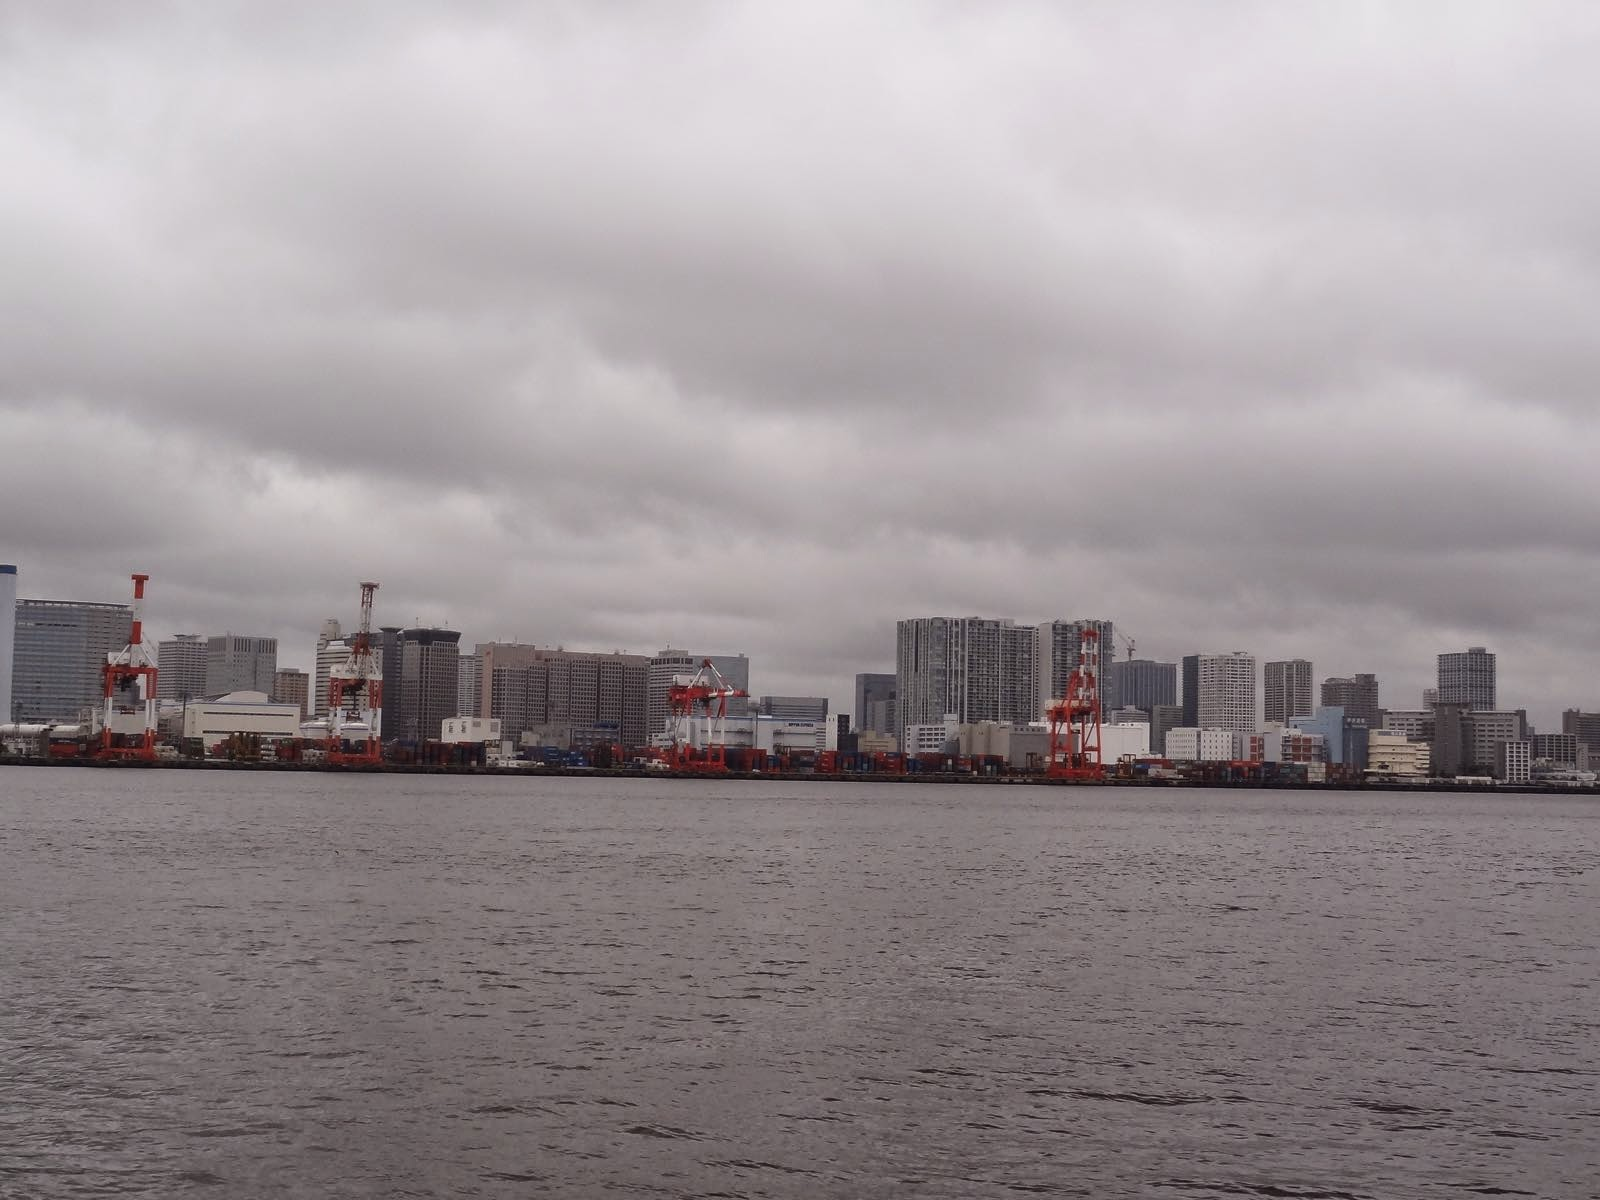 The main Tokyo container port